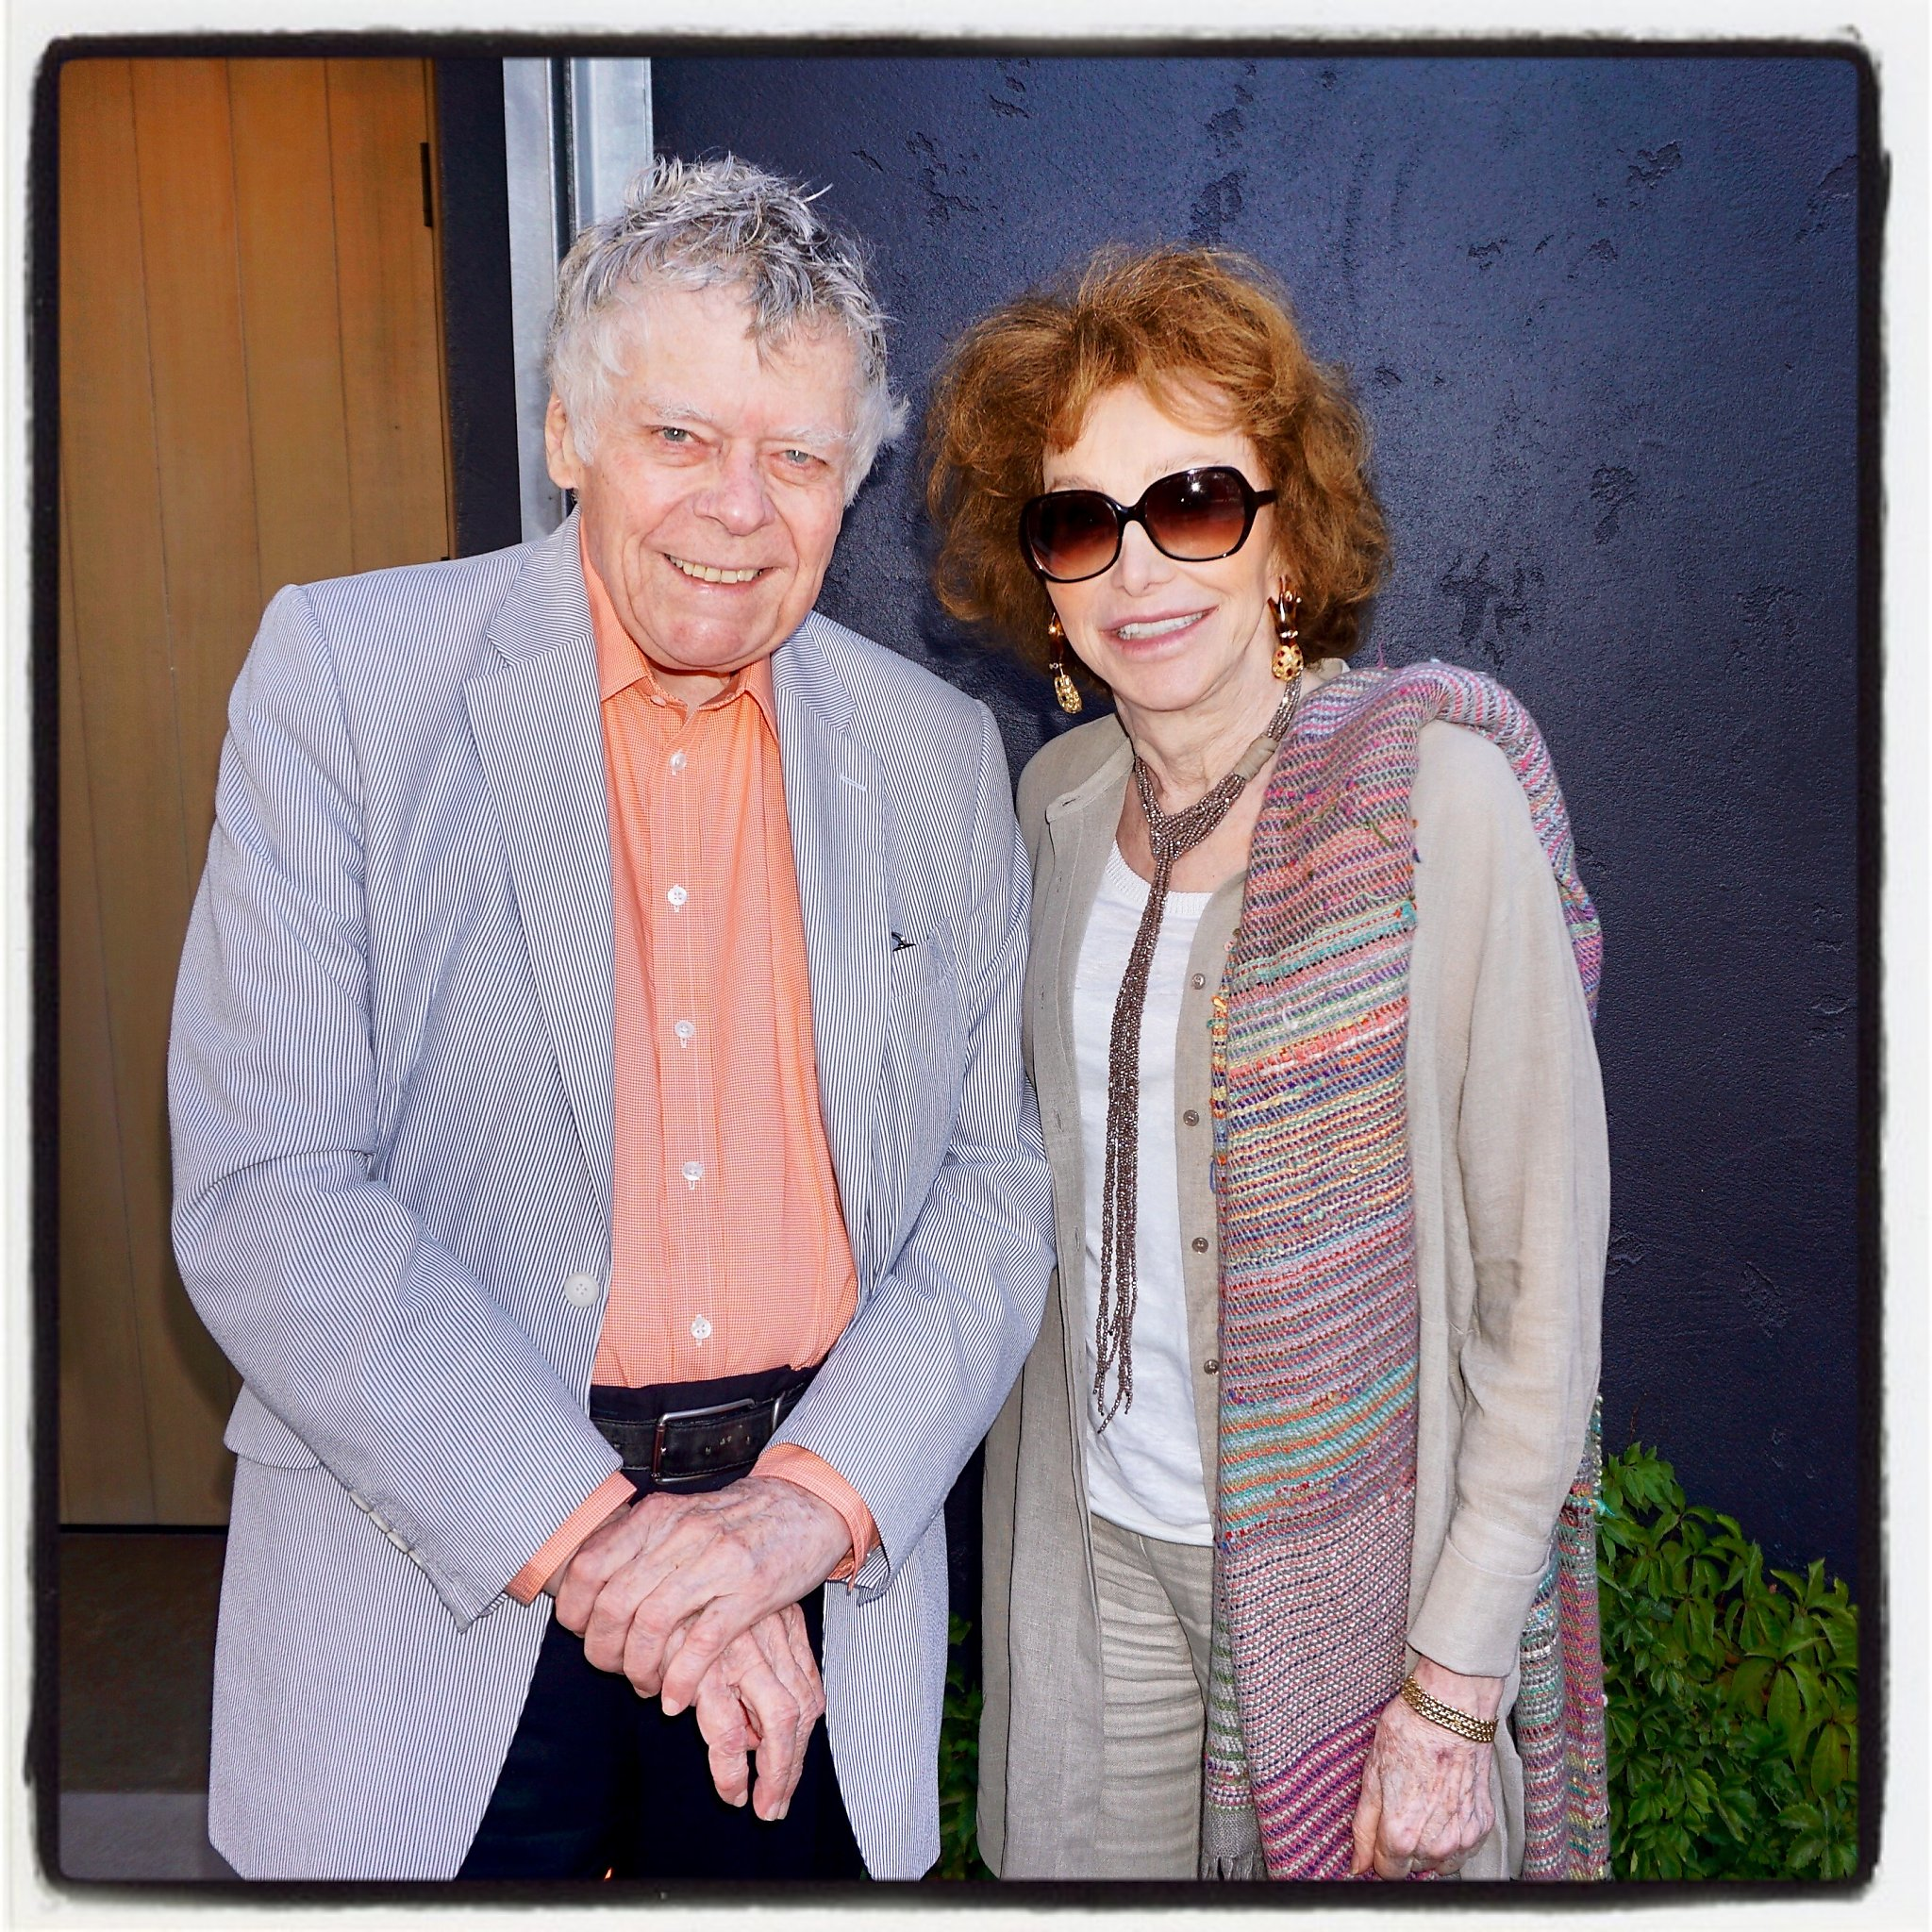 Gordon Getty Fete Raises Spirits And Funds For Arts Earth